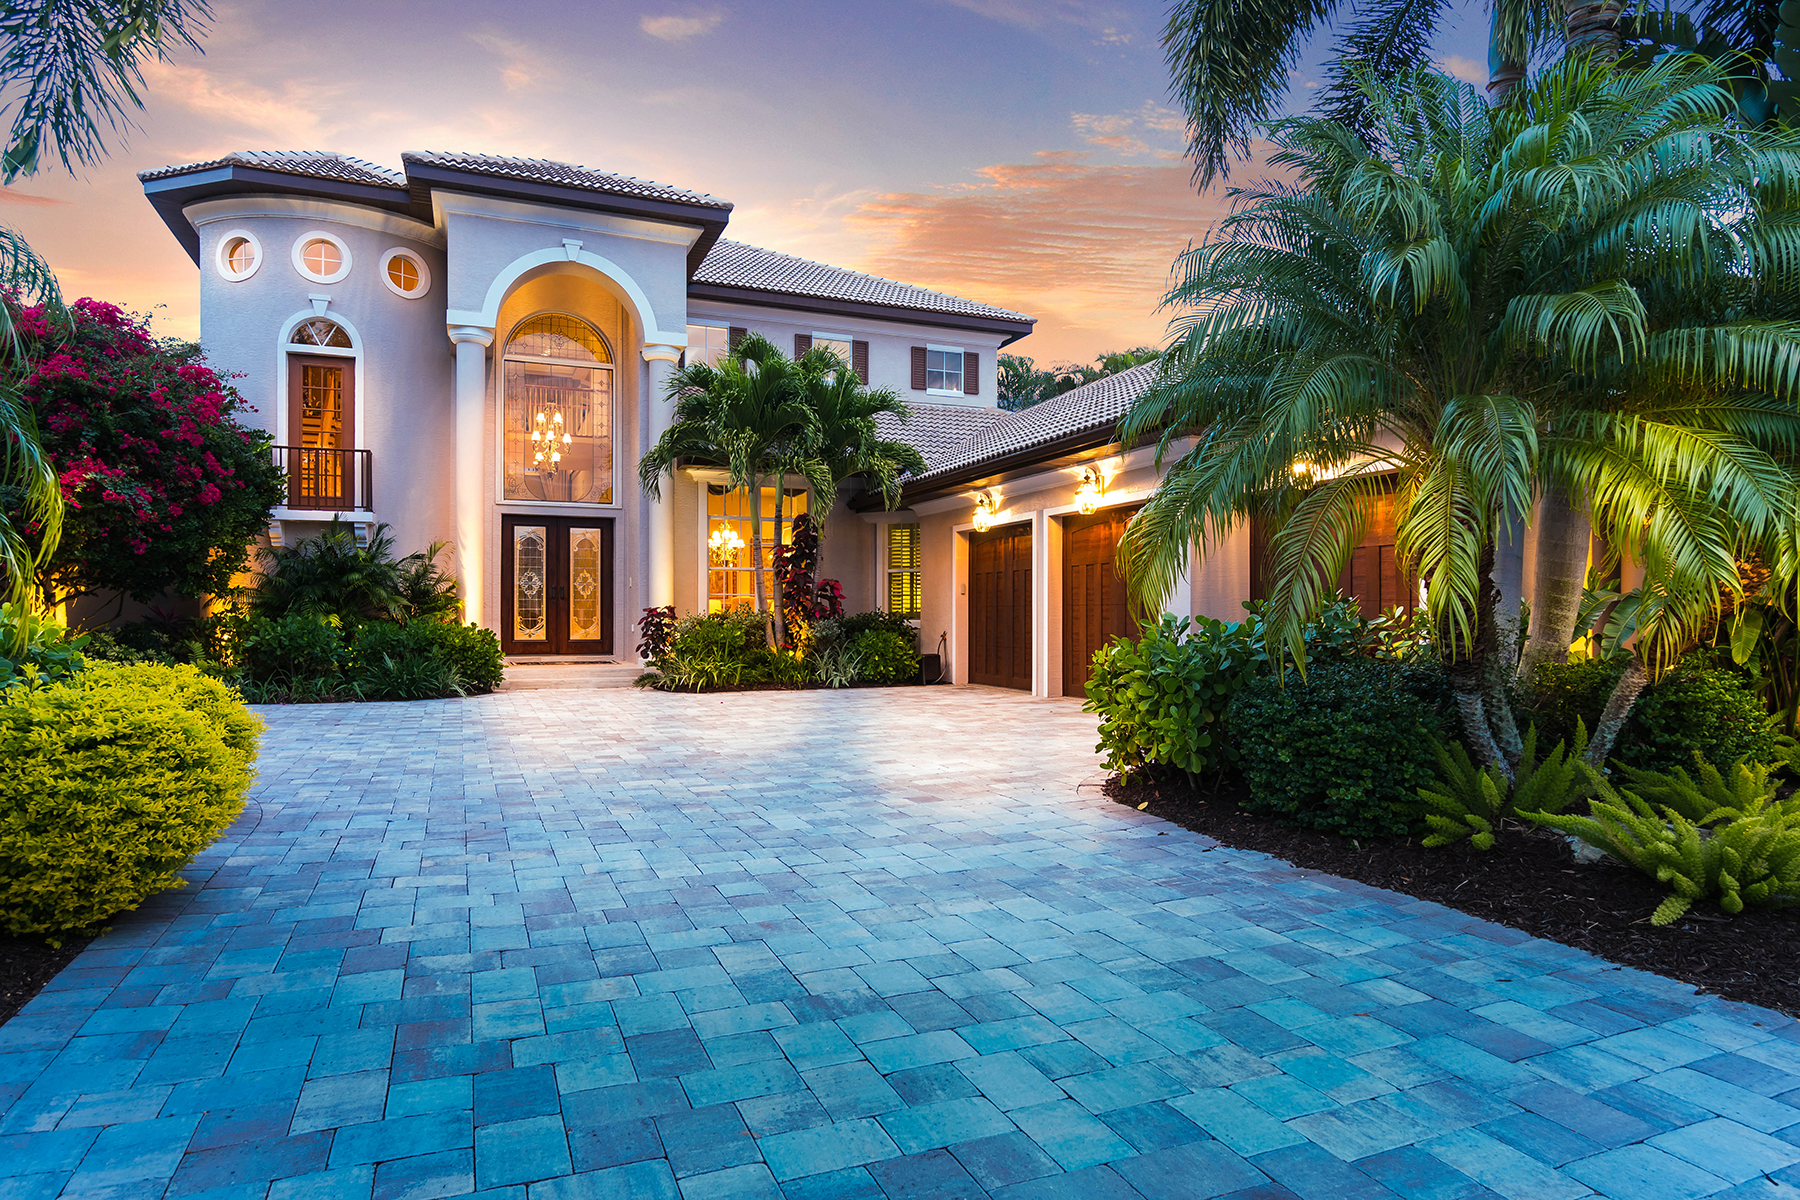 Casa Unifamiliar por un Venta en WATERLEFE 10411 Riverbank Terr Bradenton, Florida, 34212 Estados Unidos